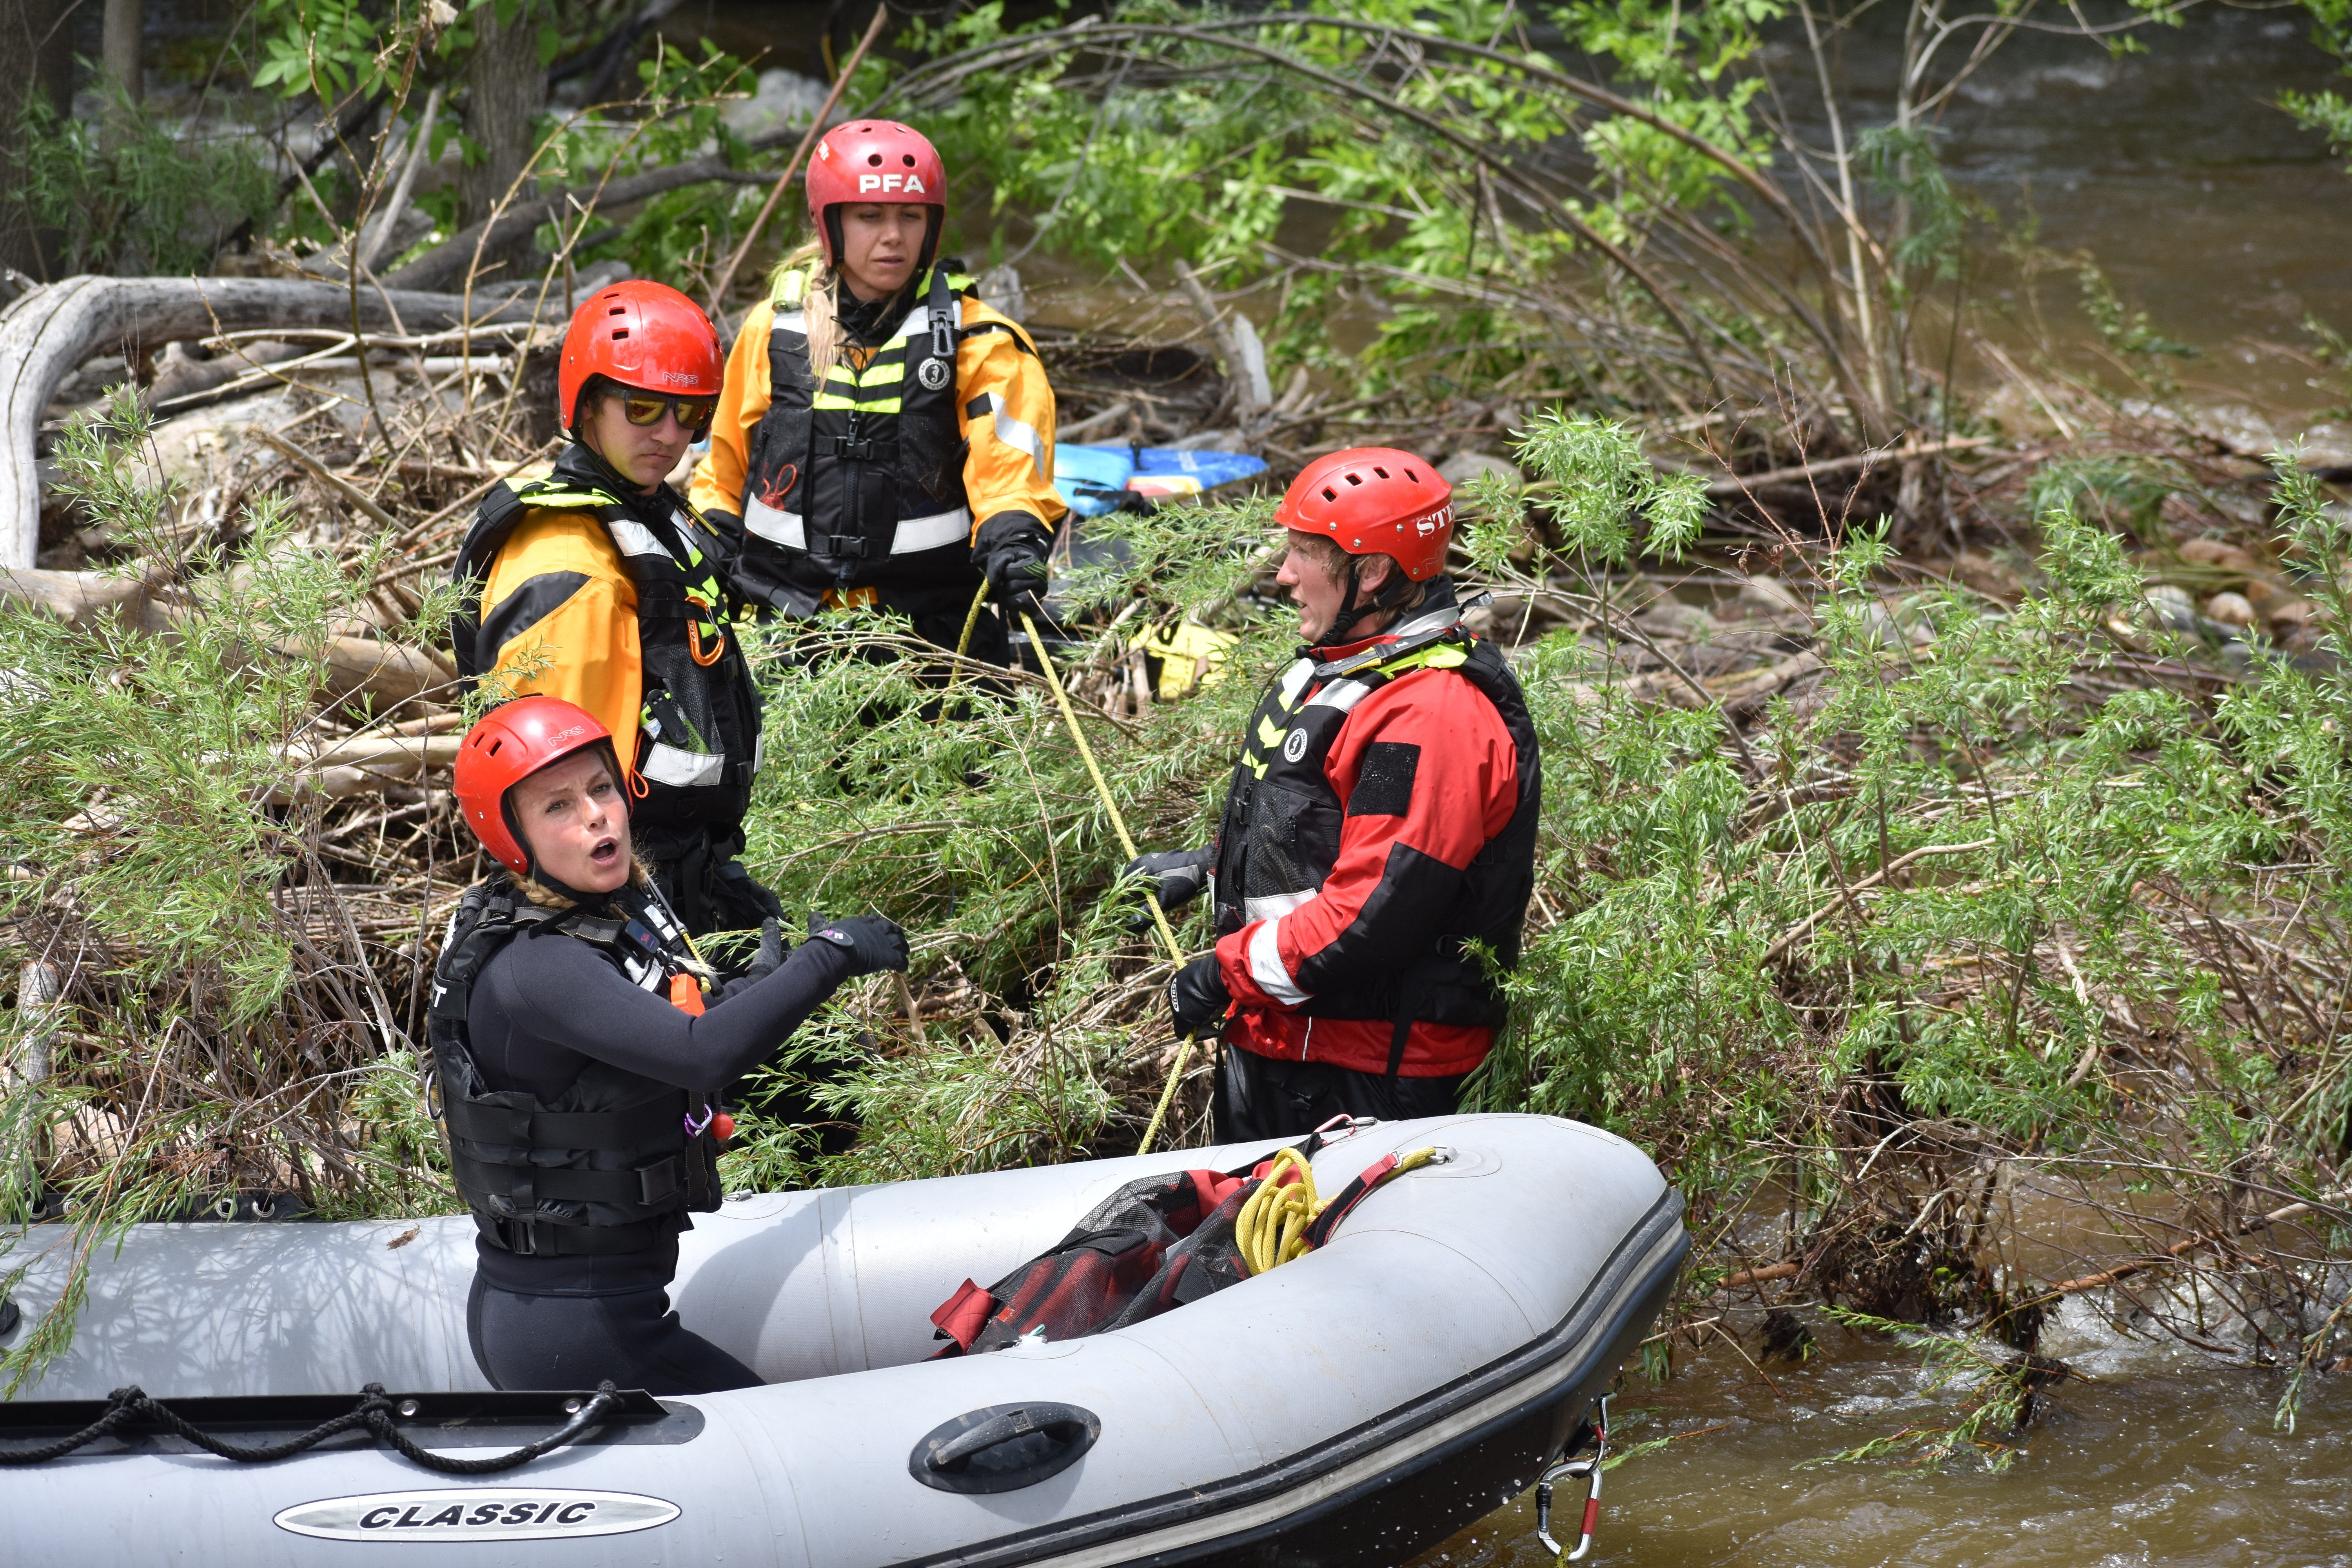 Colorado man airlifted from frigid river after tube flipped in rapids